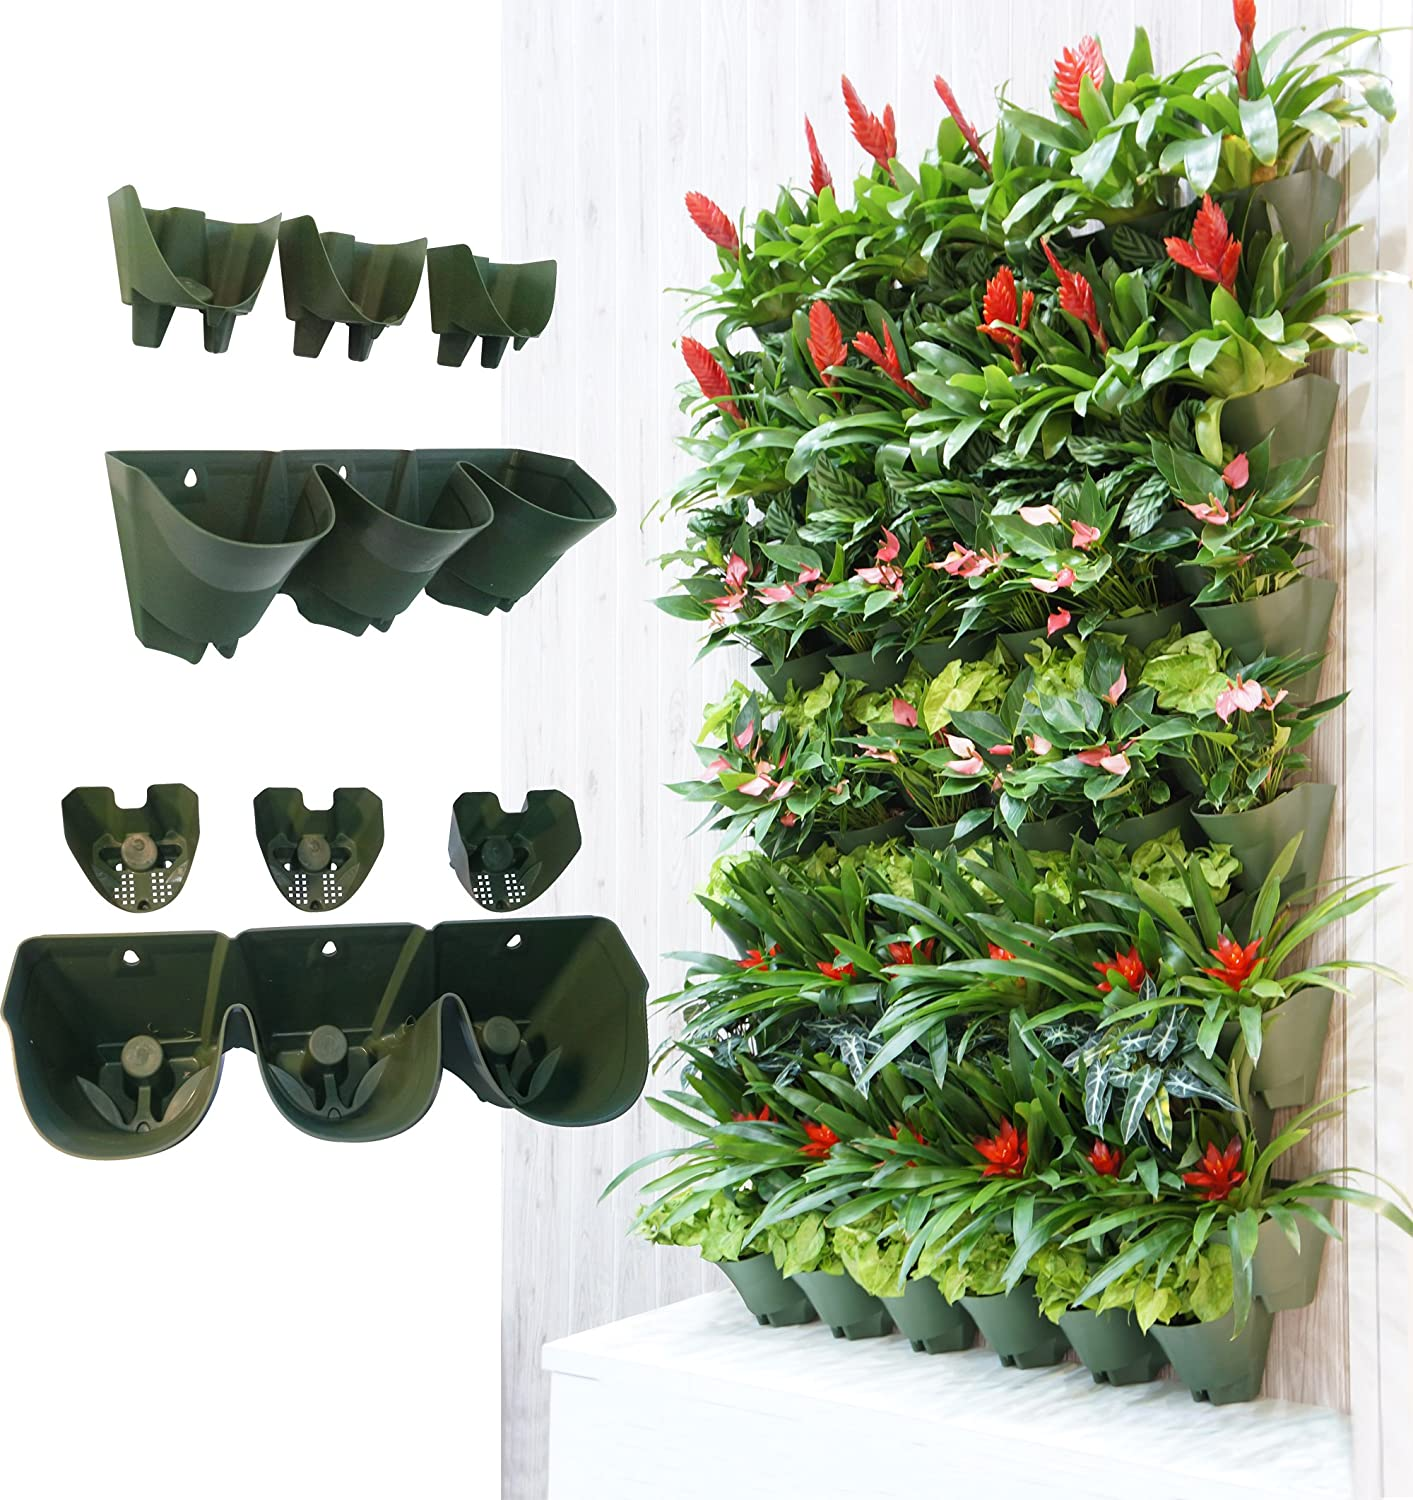 Superior Self Watering Vertical Planter Kit